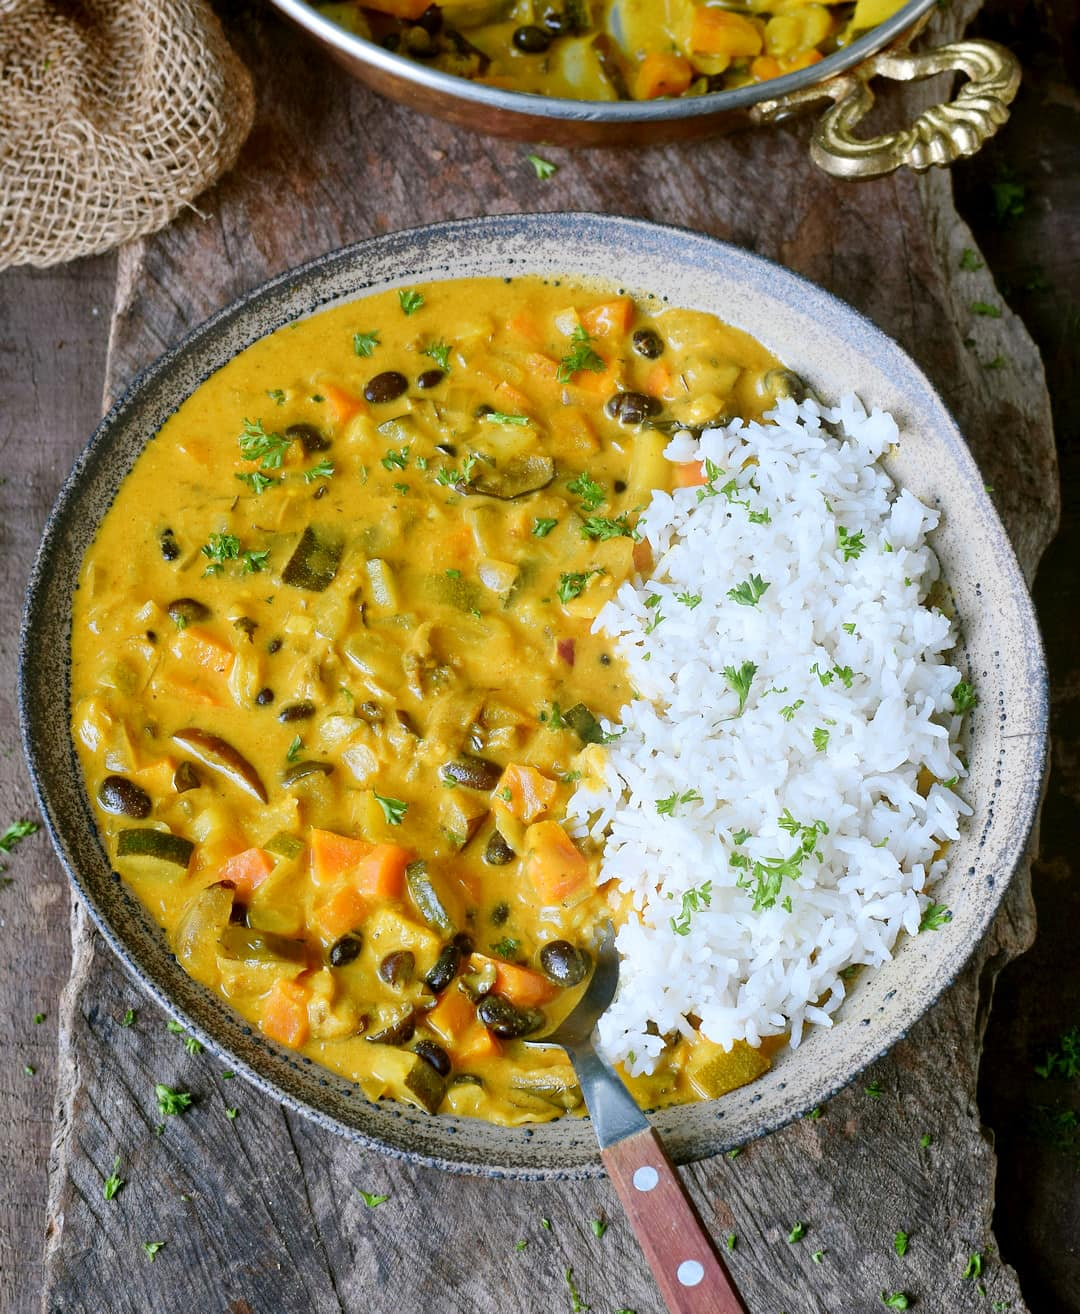 healthy vegetable curry recipe with coconut milk and pineapple in a bowl